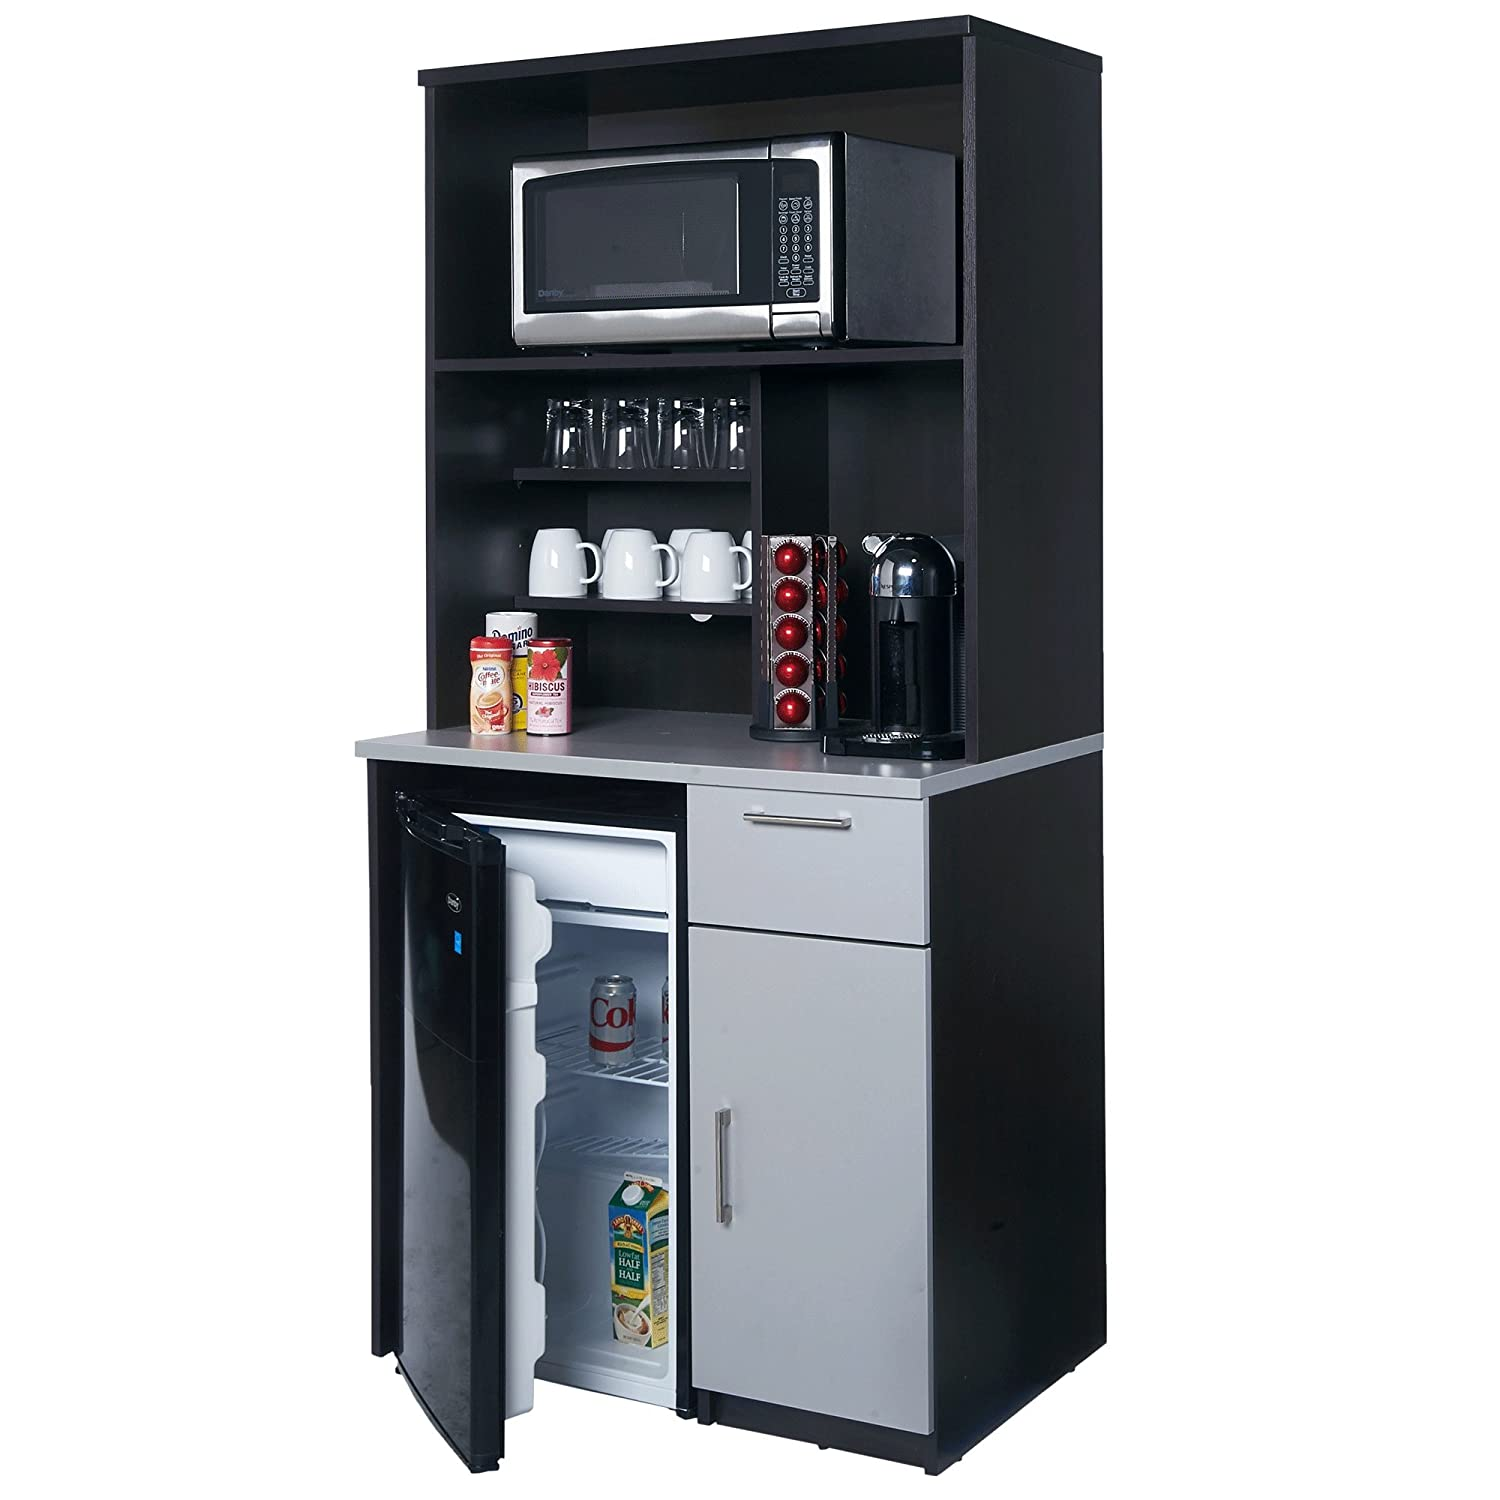 Coffee Break Lunch Room Furniture FULLY ASSEMBLED Ready To Use 2pc Group BREAKTIME Model 3199- EspressoGrey Color.INSTANTLY create your new Coffee Break Lunch Room Includes Furniture Cabinets Only